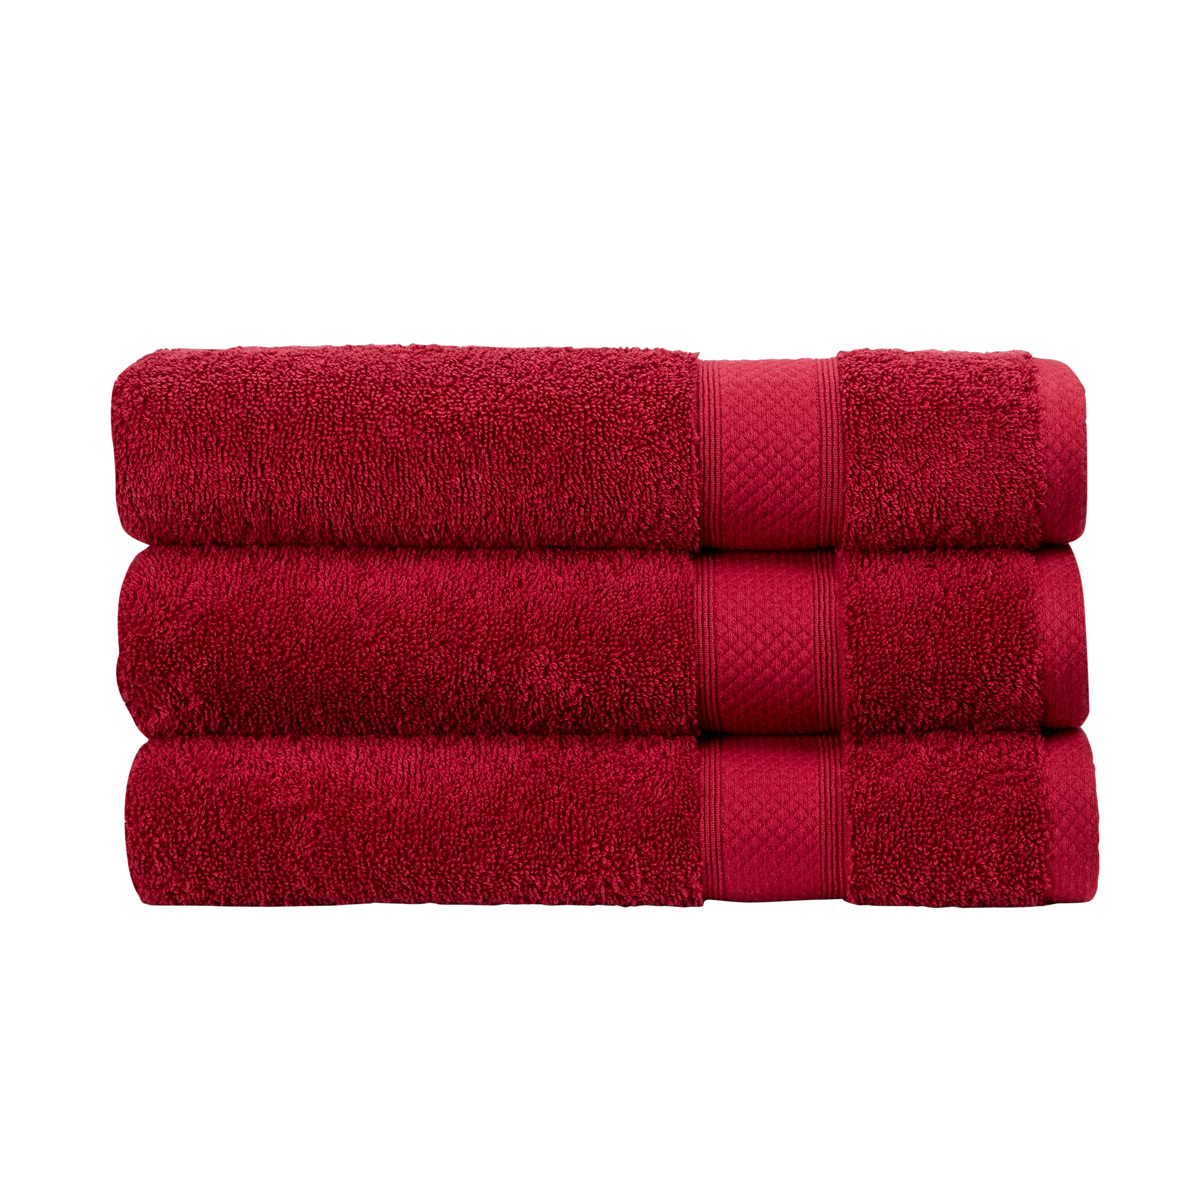 An image of Luxury Cotton Rialto Face Cloth in Wine (Red) by Christy